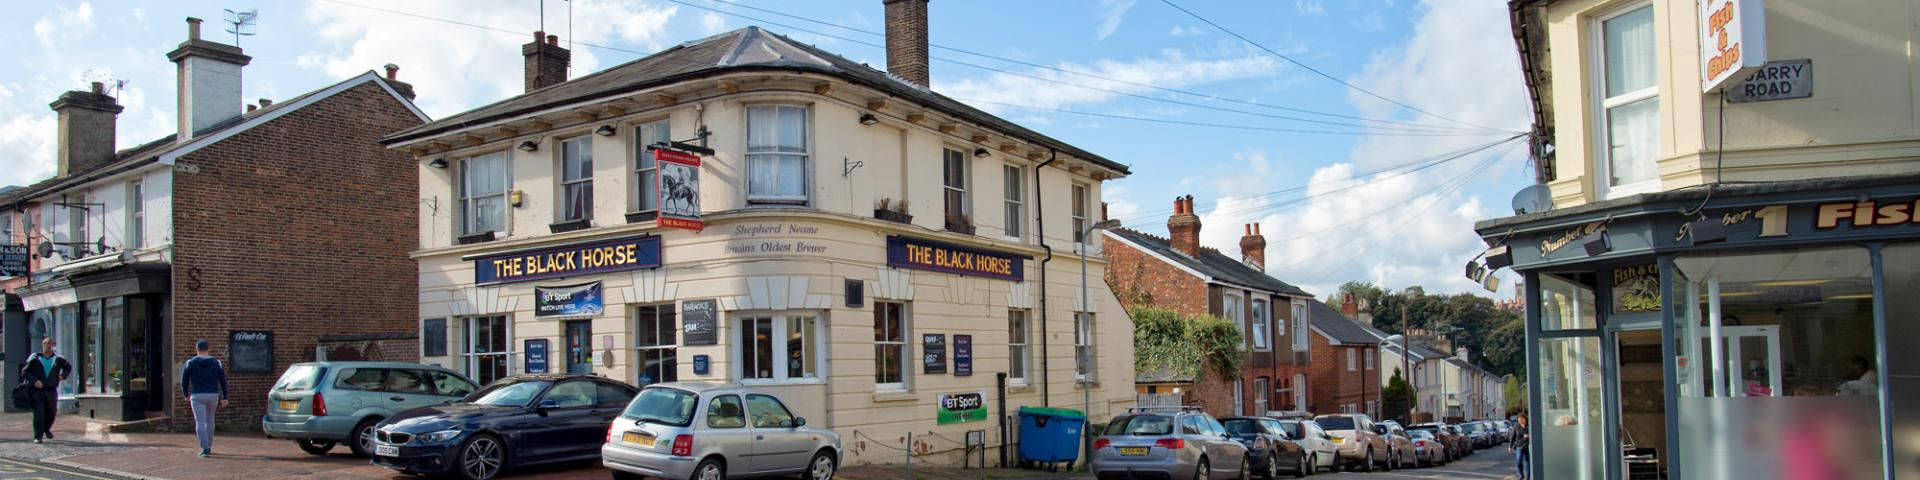 Black Horse, Tunbridge Wells